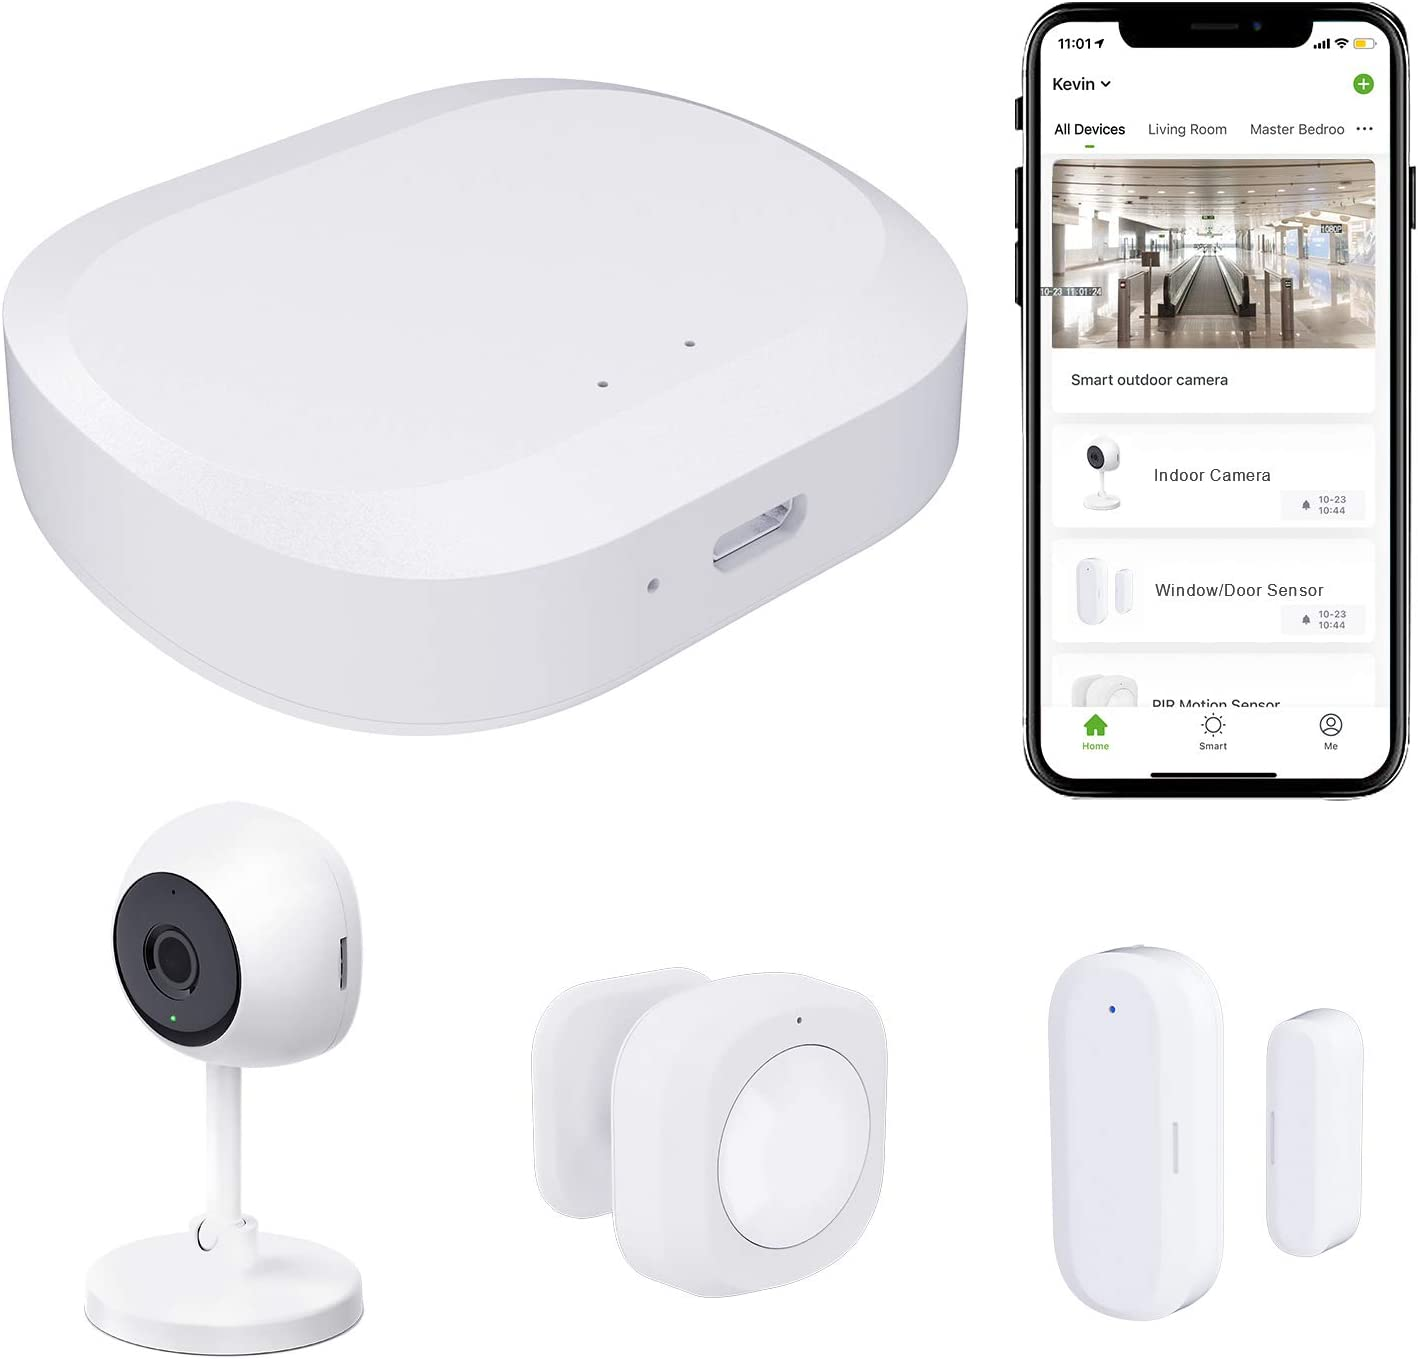 JLAZGJ Home Security System Alarm Home Security kit 4-Piece Alarm System Home wirelessly, Camera Window Door Alarms, 24 Hours Professional Home Safeguard Support 2.4Ghz WiFi(4 Pieces)